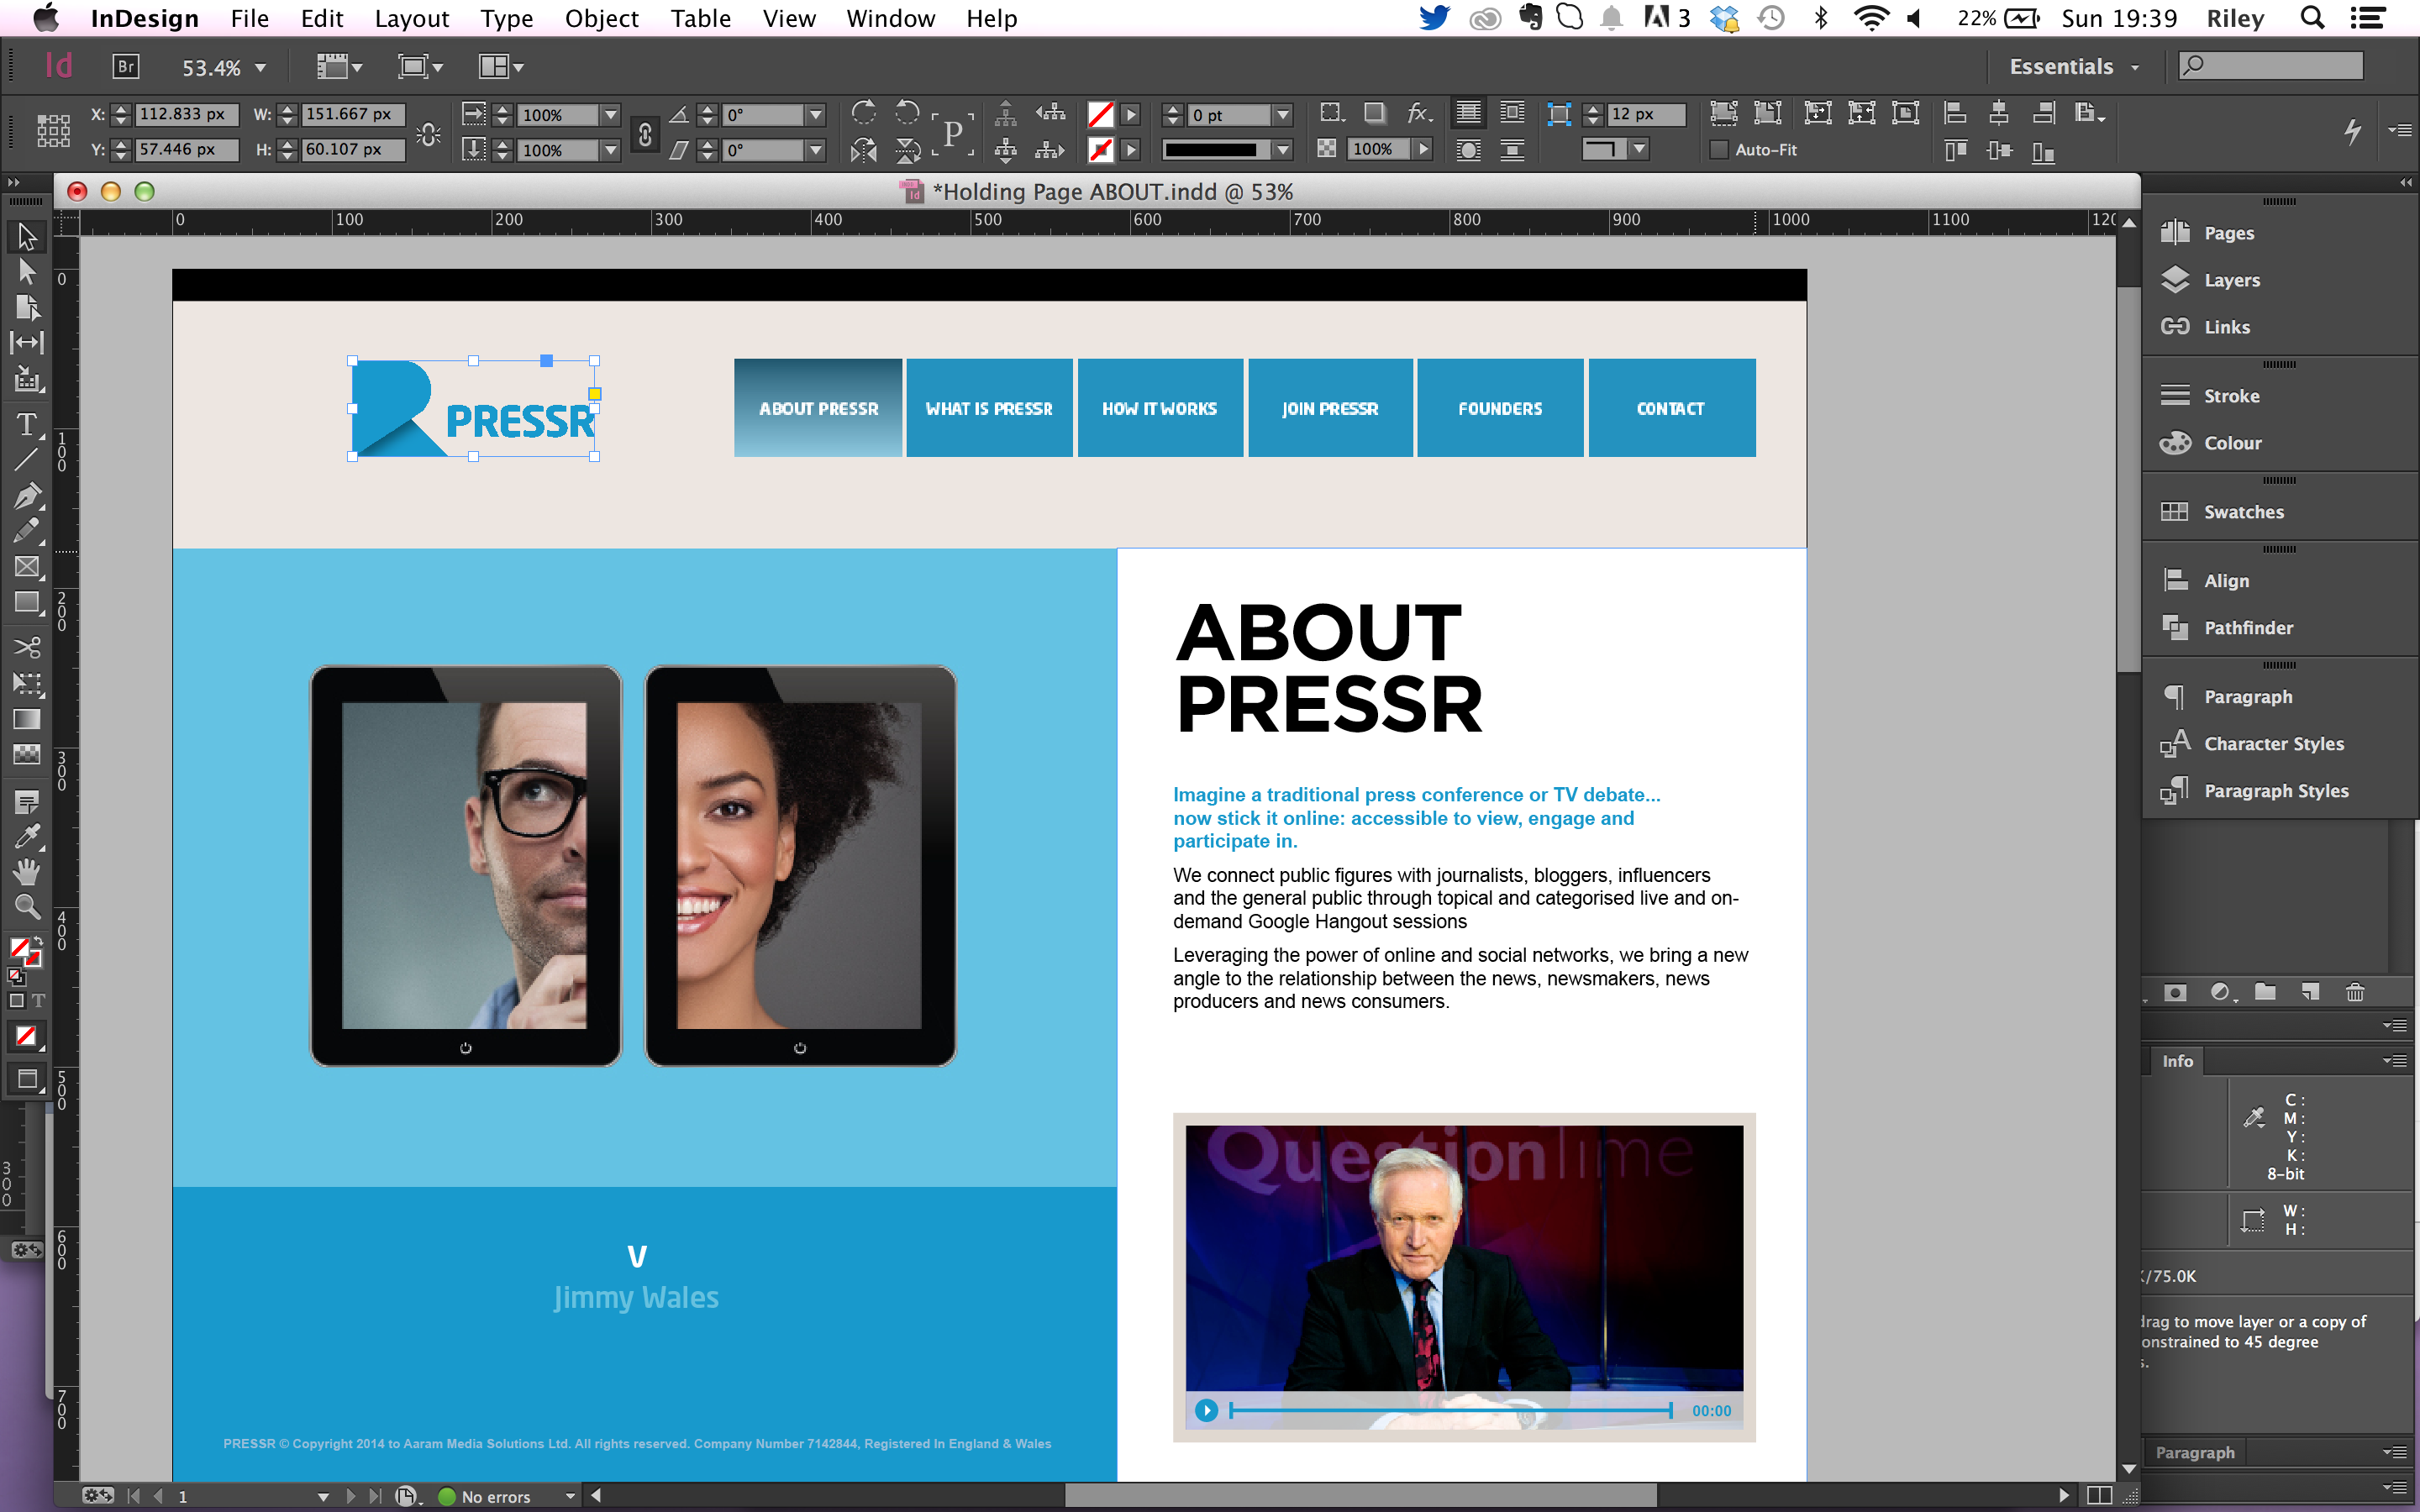 Building A Web Page From An Indesign File Ding Digital